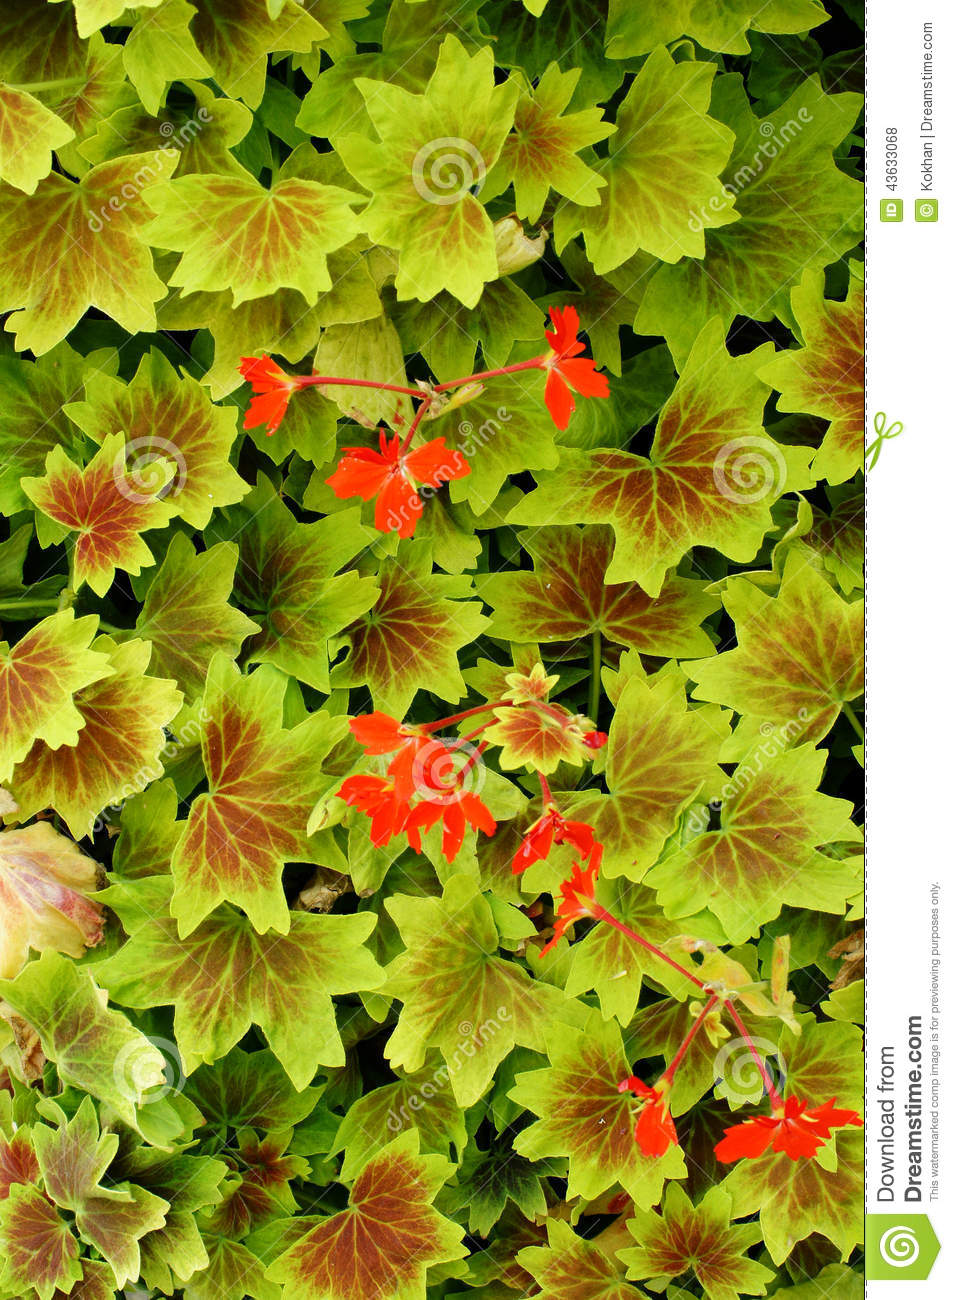 Red Flowers Among Leaves Stock Photo Image Of Ragtime 43633068